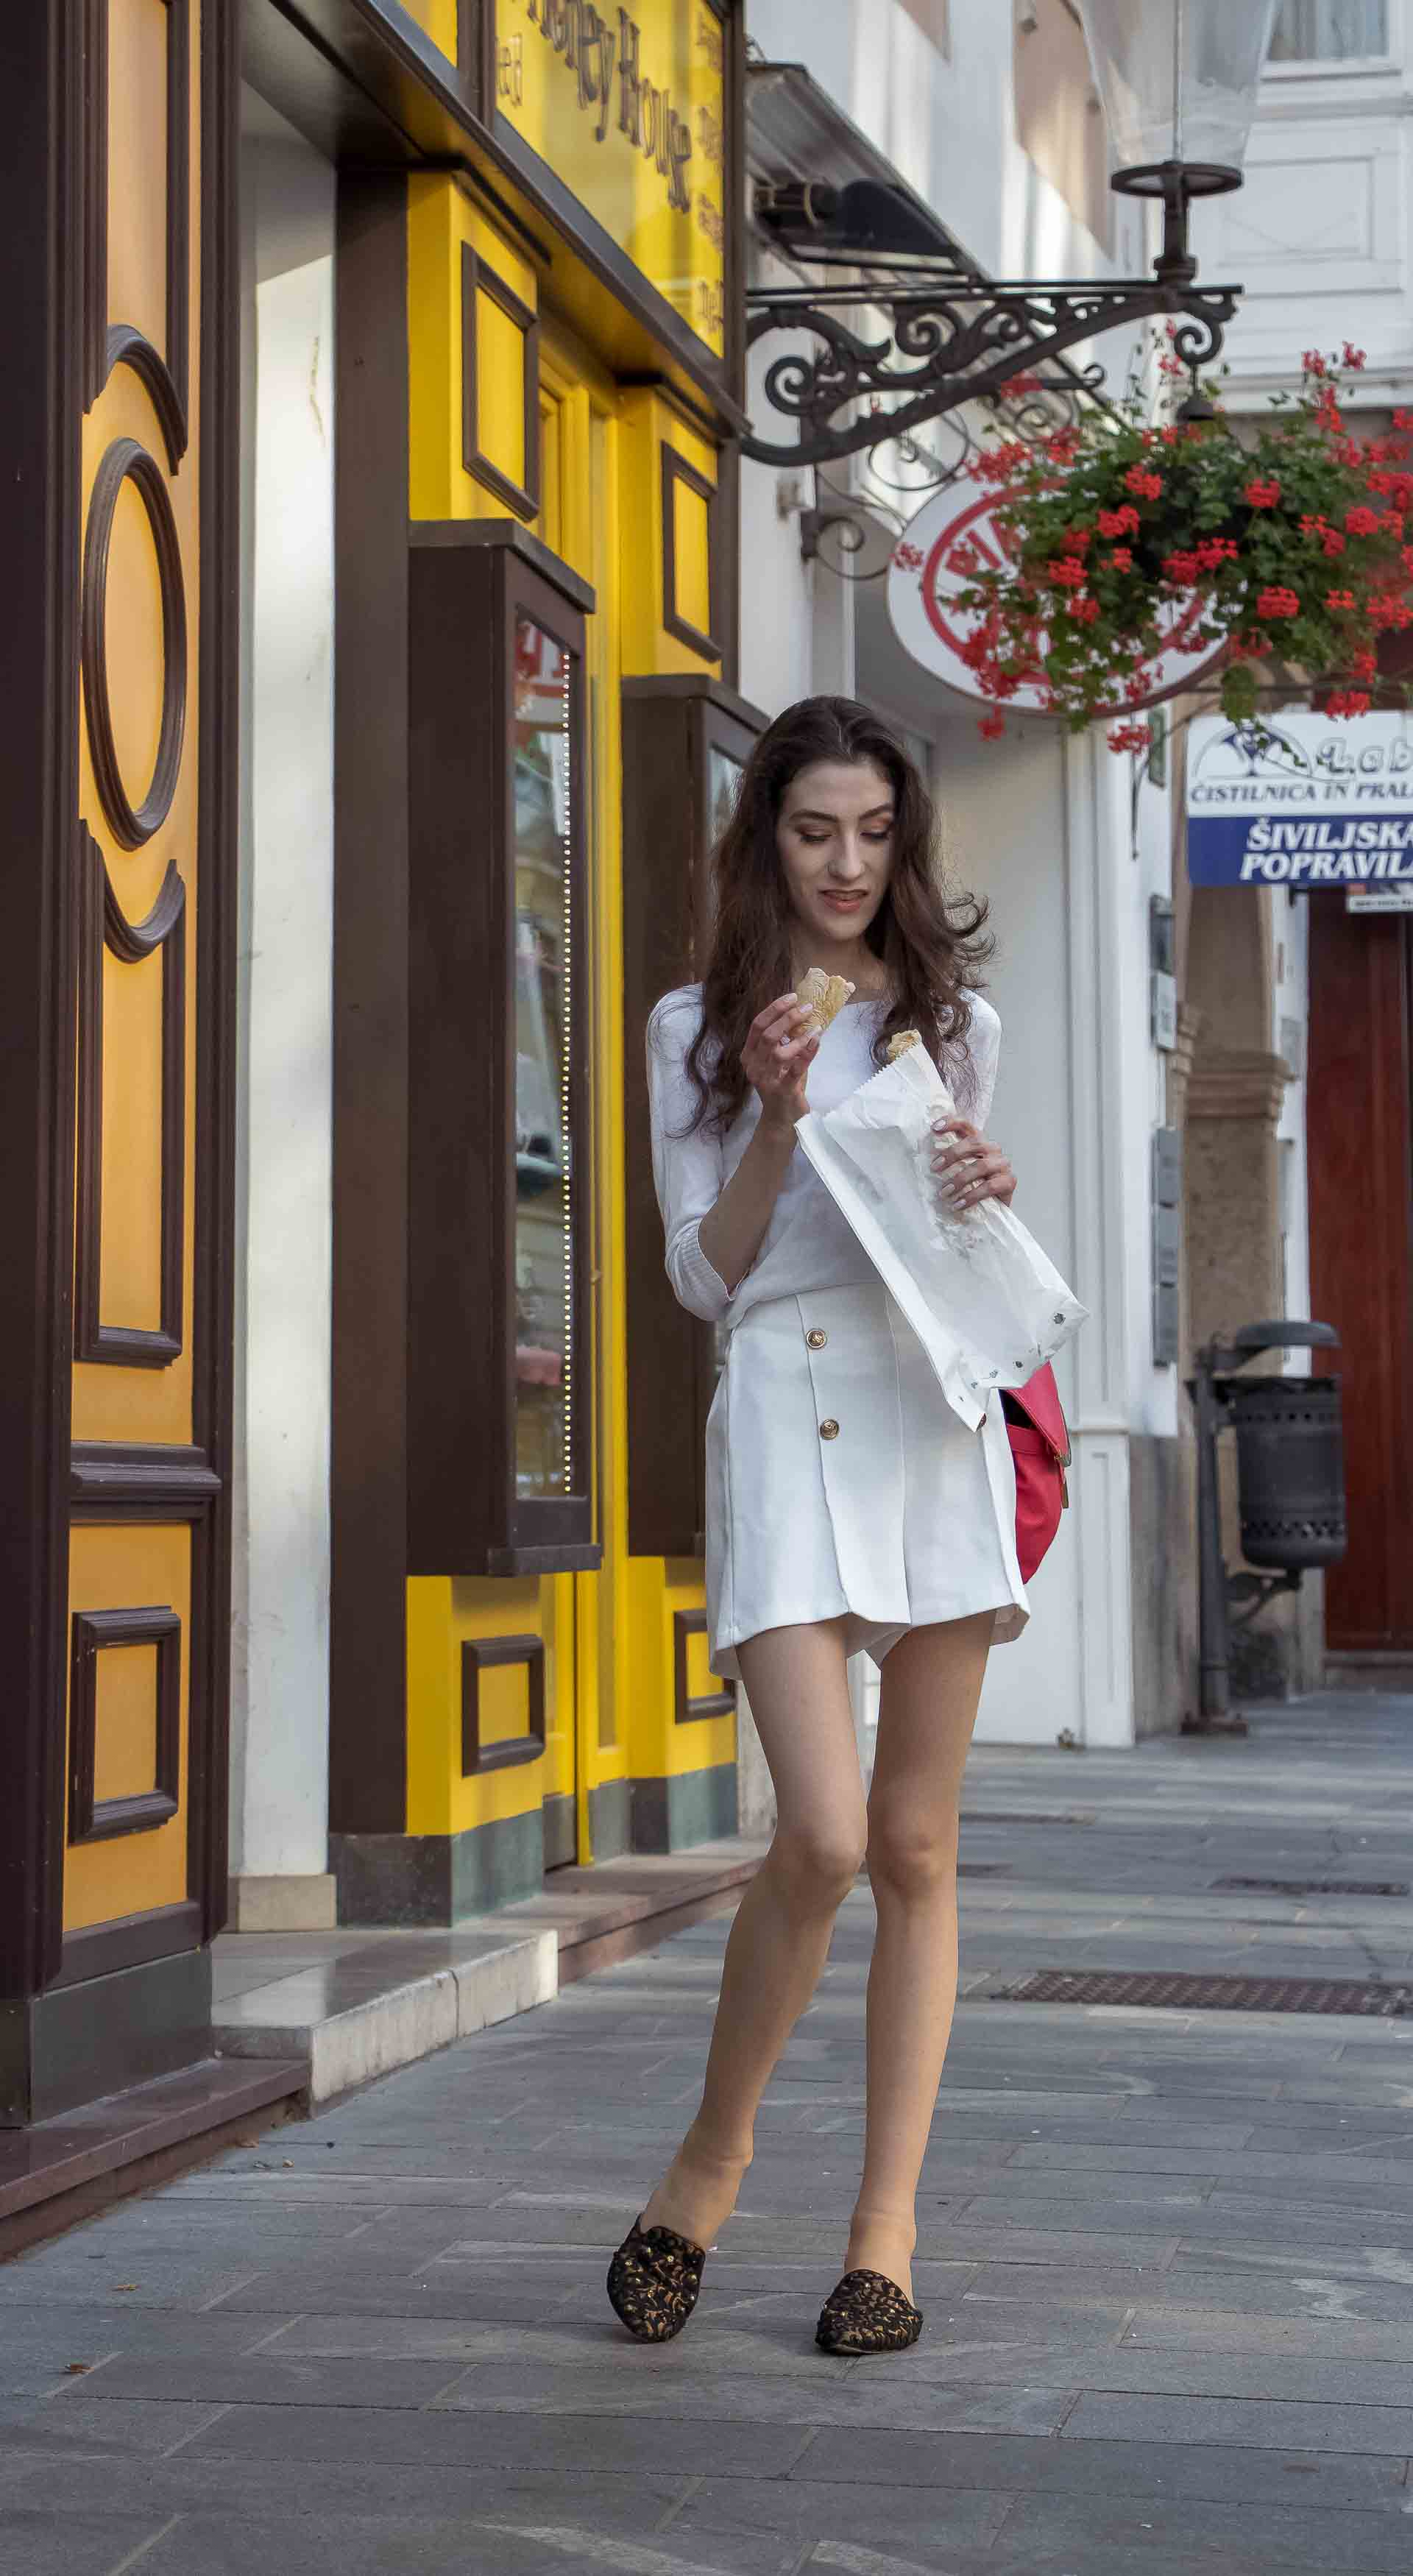 Slovenska modna blogerka Veronika Lipar of Brunette from Wall wearing all in white outfit, a white sweater, white tailored shorts, black flat slipper mules, pink top handle bag, a paper bag